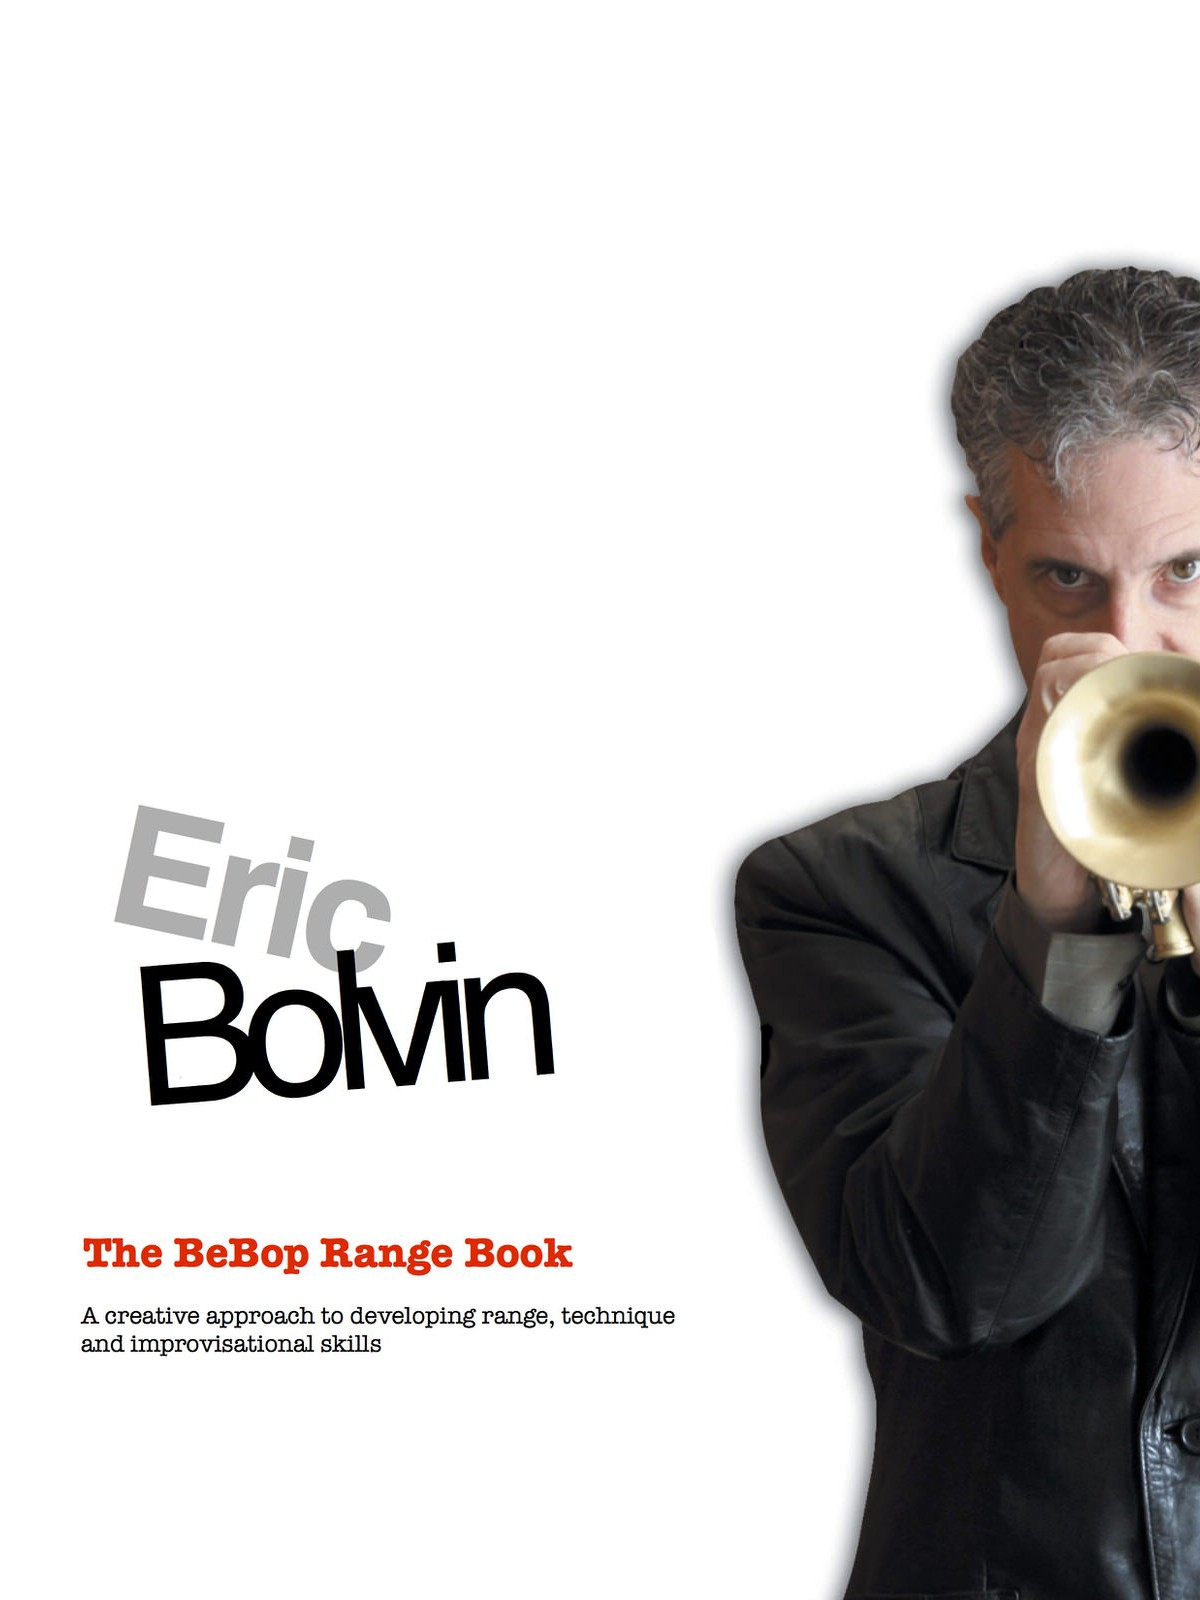 Bolvin, The BeBop Range Book